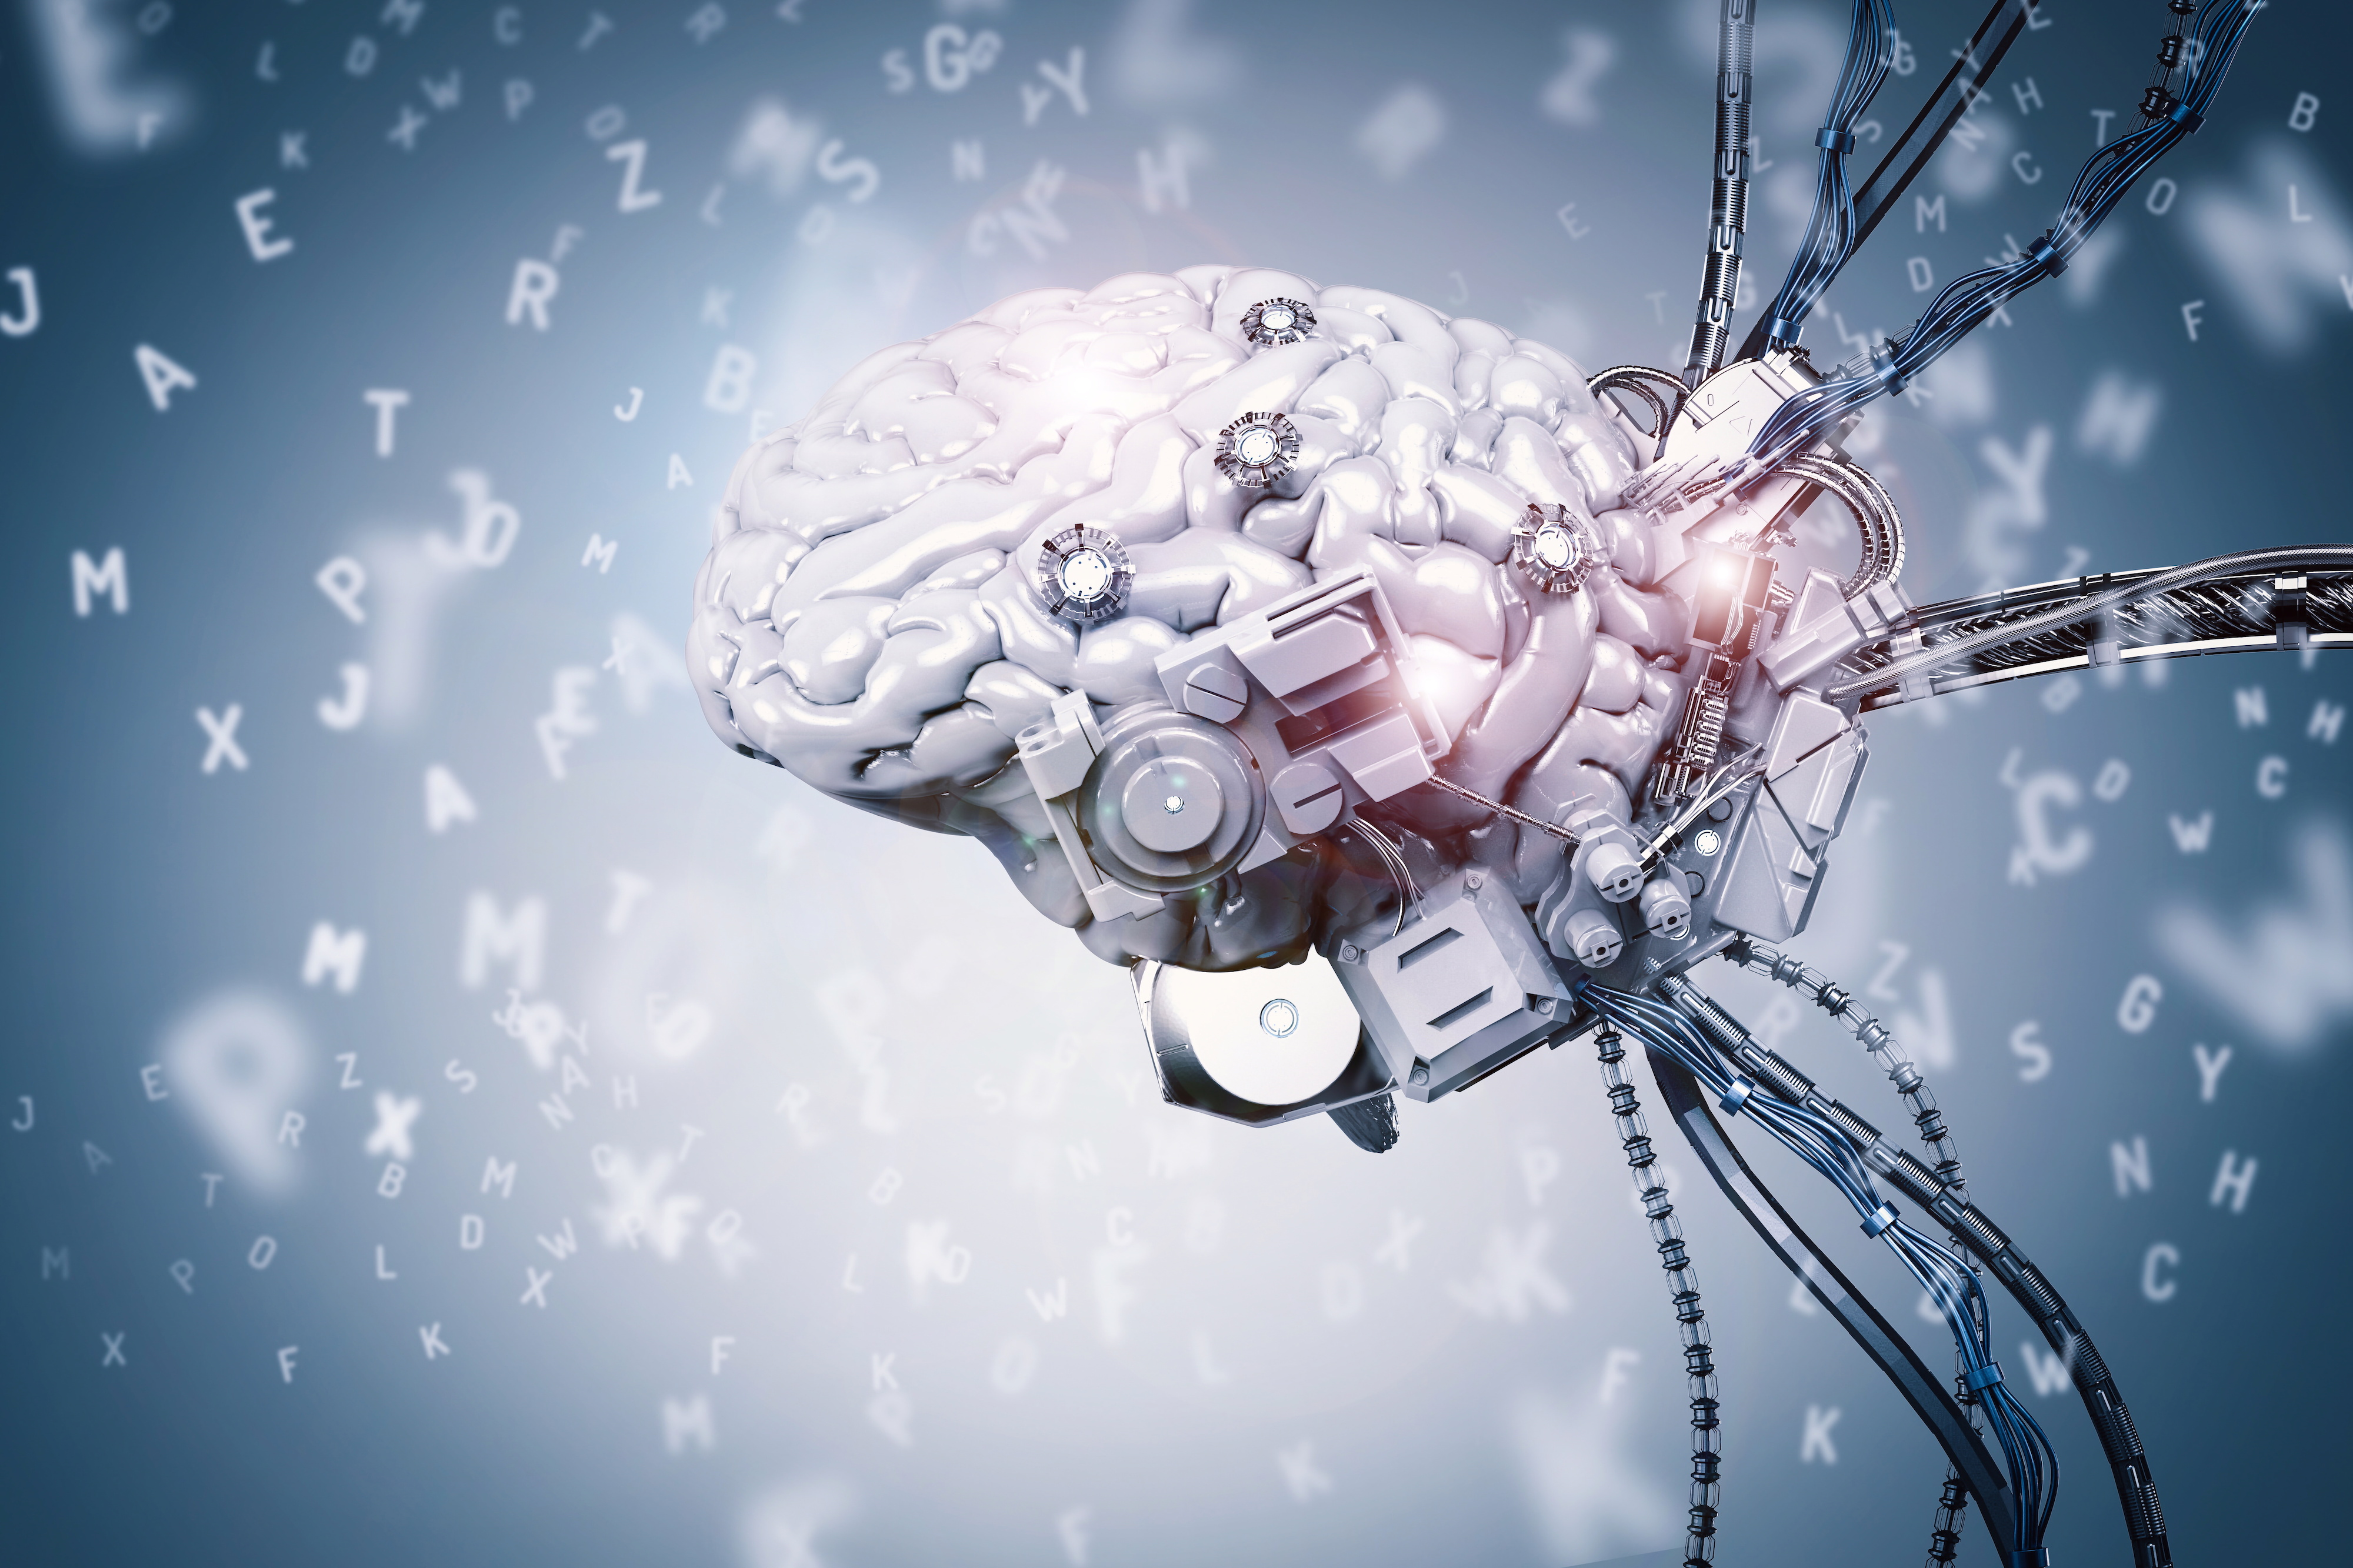 Architects of Intelligence: A reflection on the now and future of AI